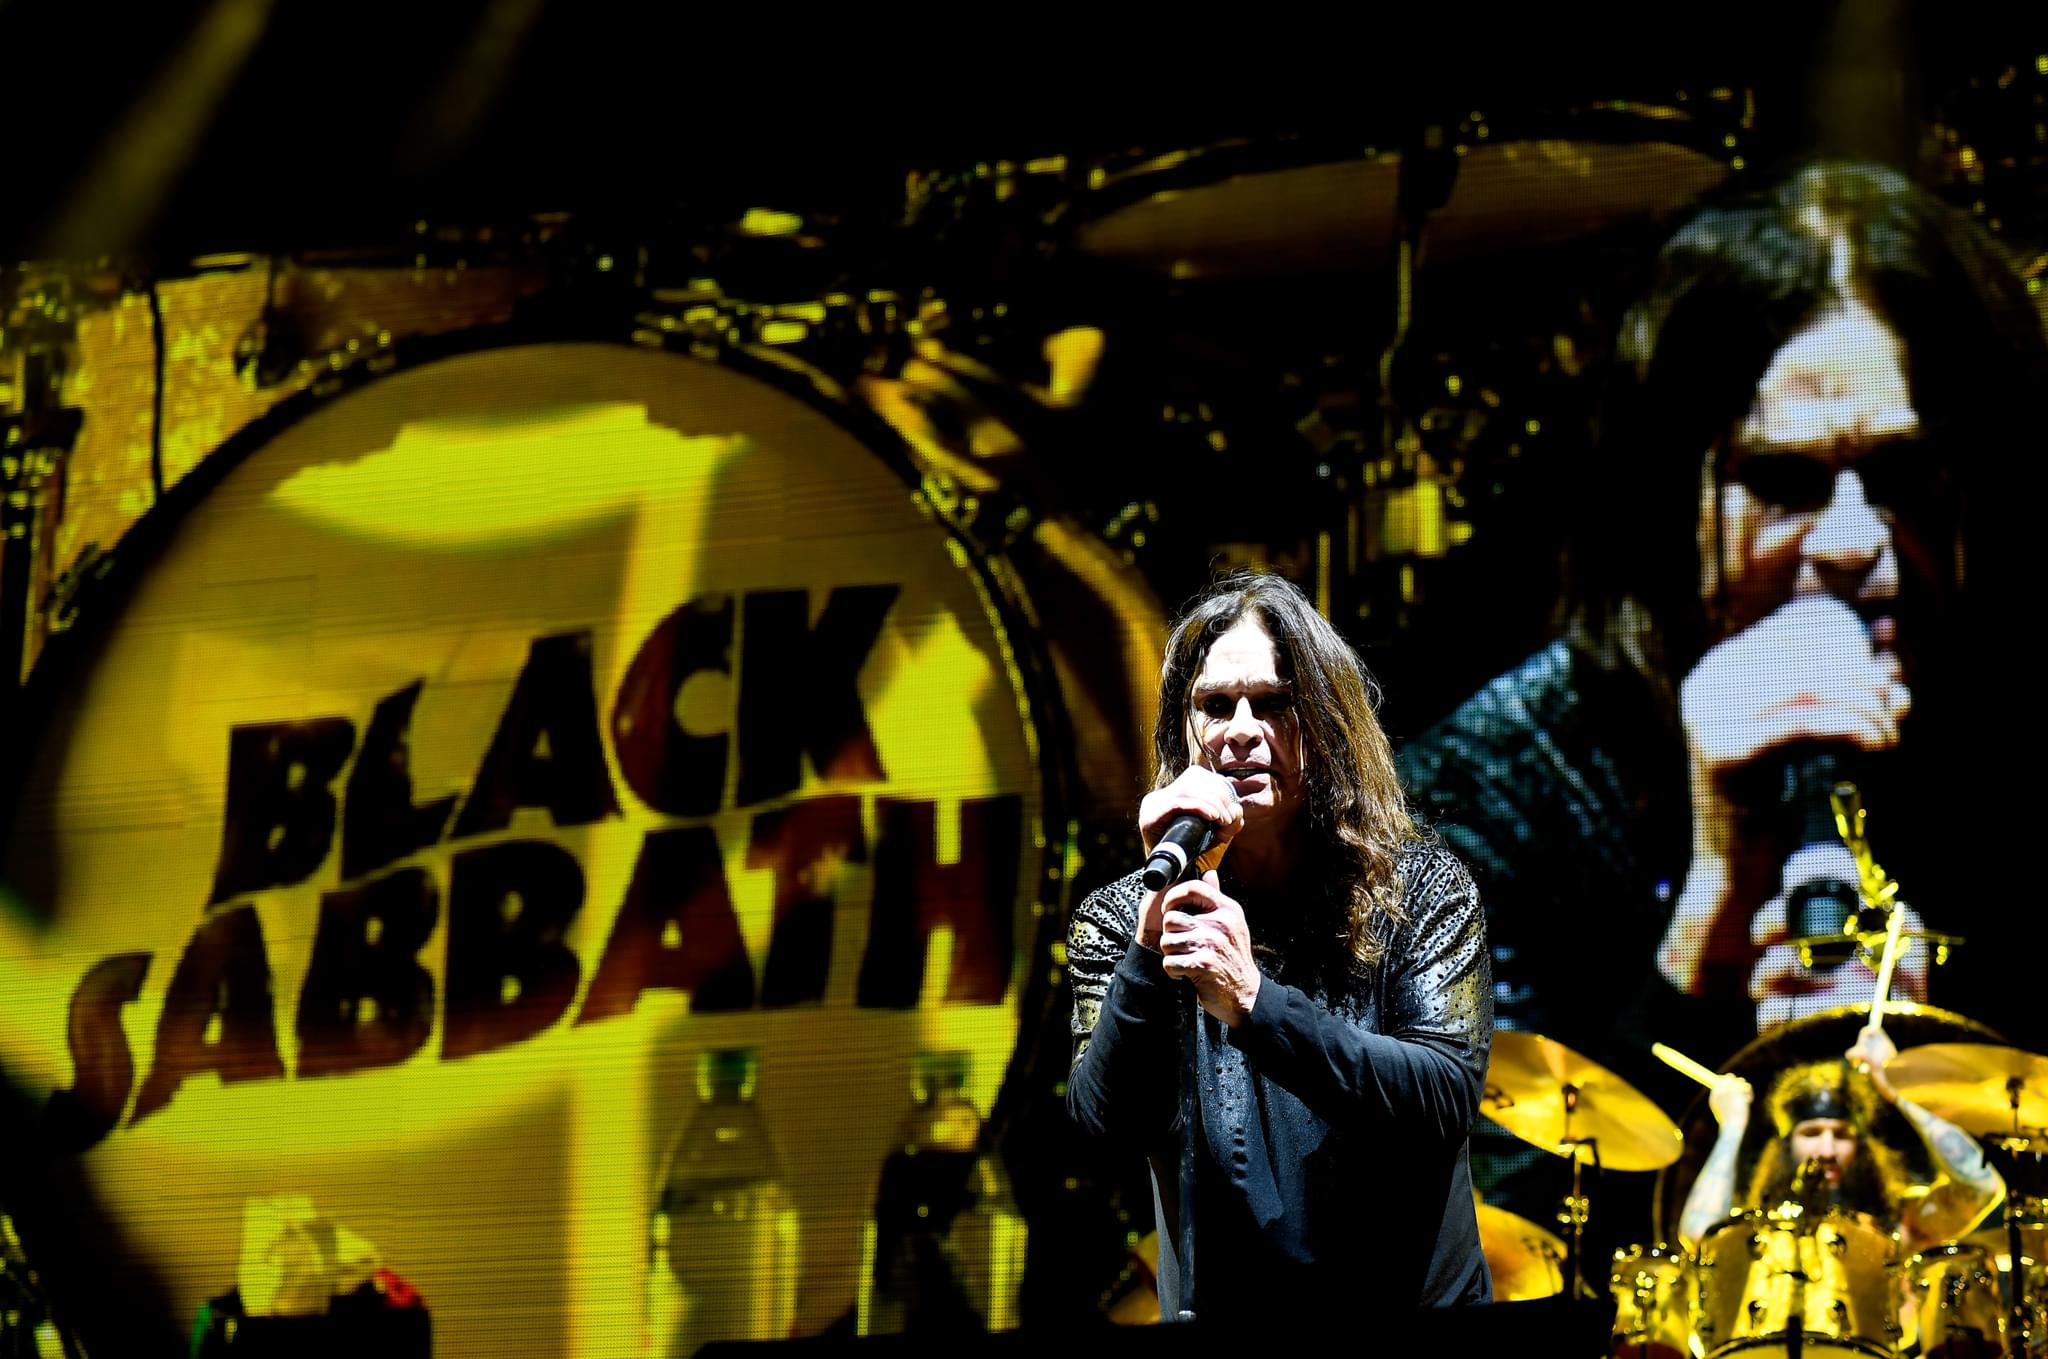 THEY ARE(NOT) DONE?? POSSIBLE SABBATH REUNION